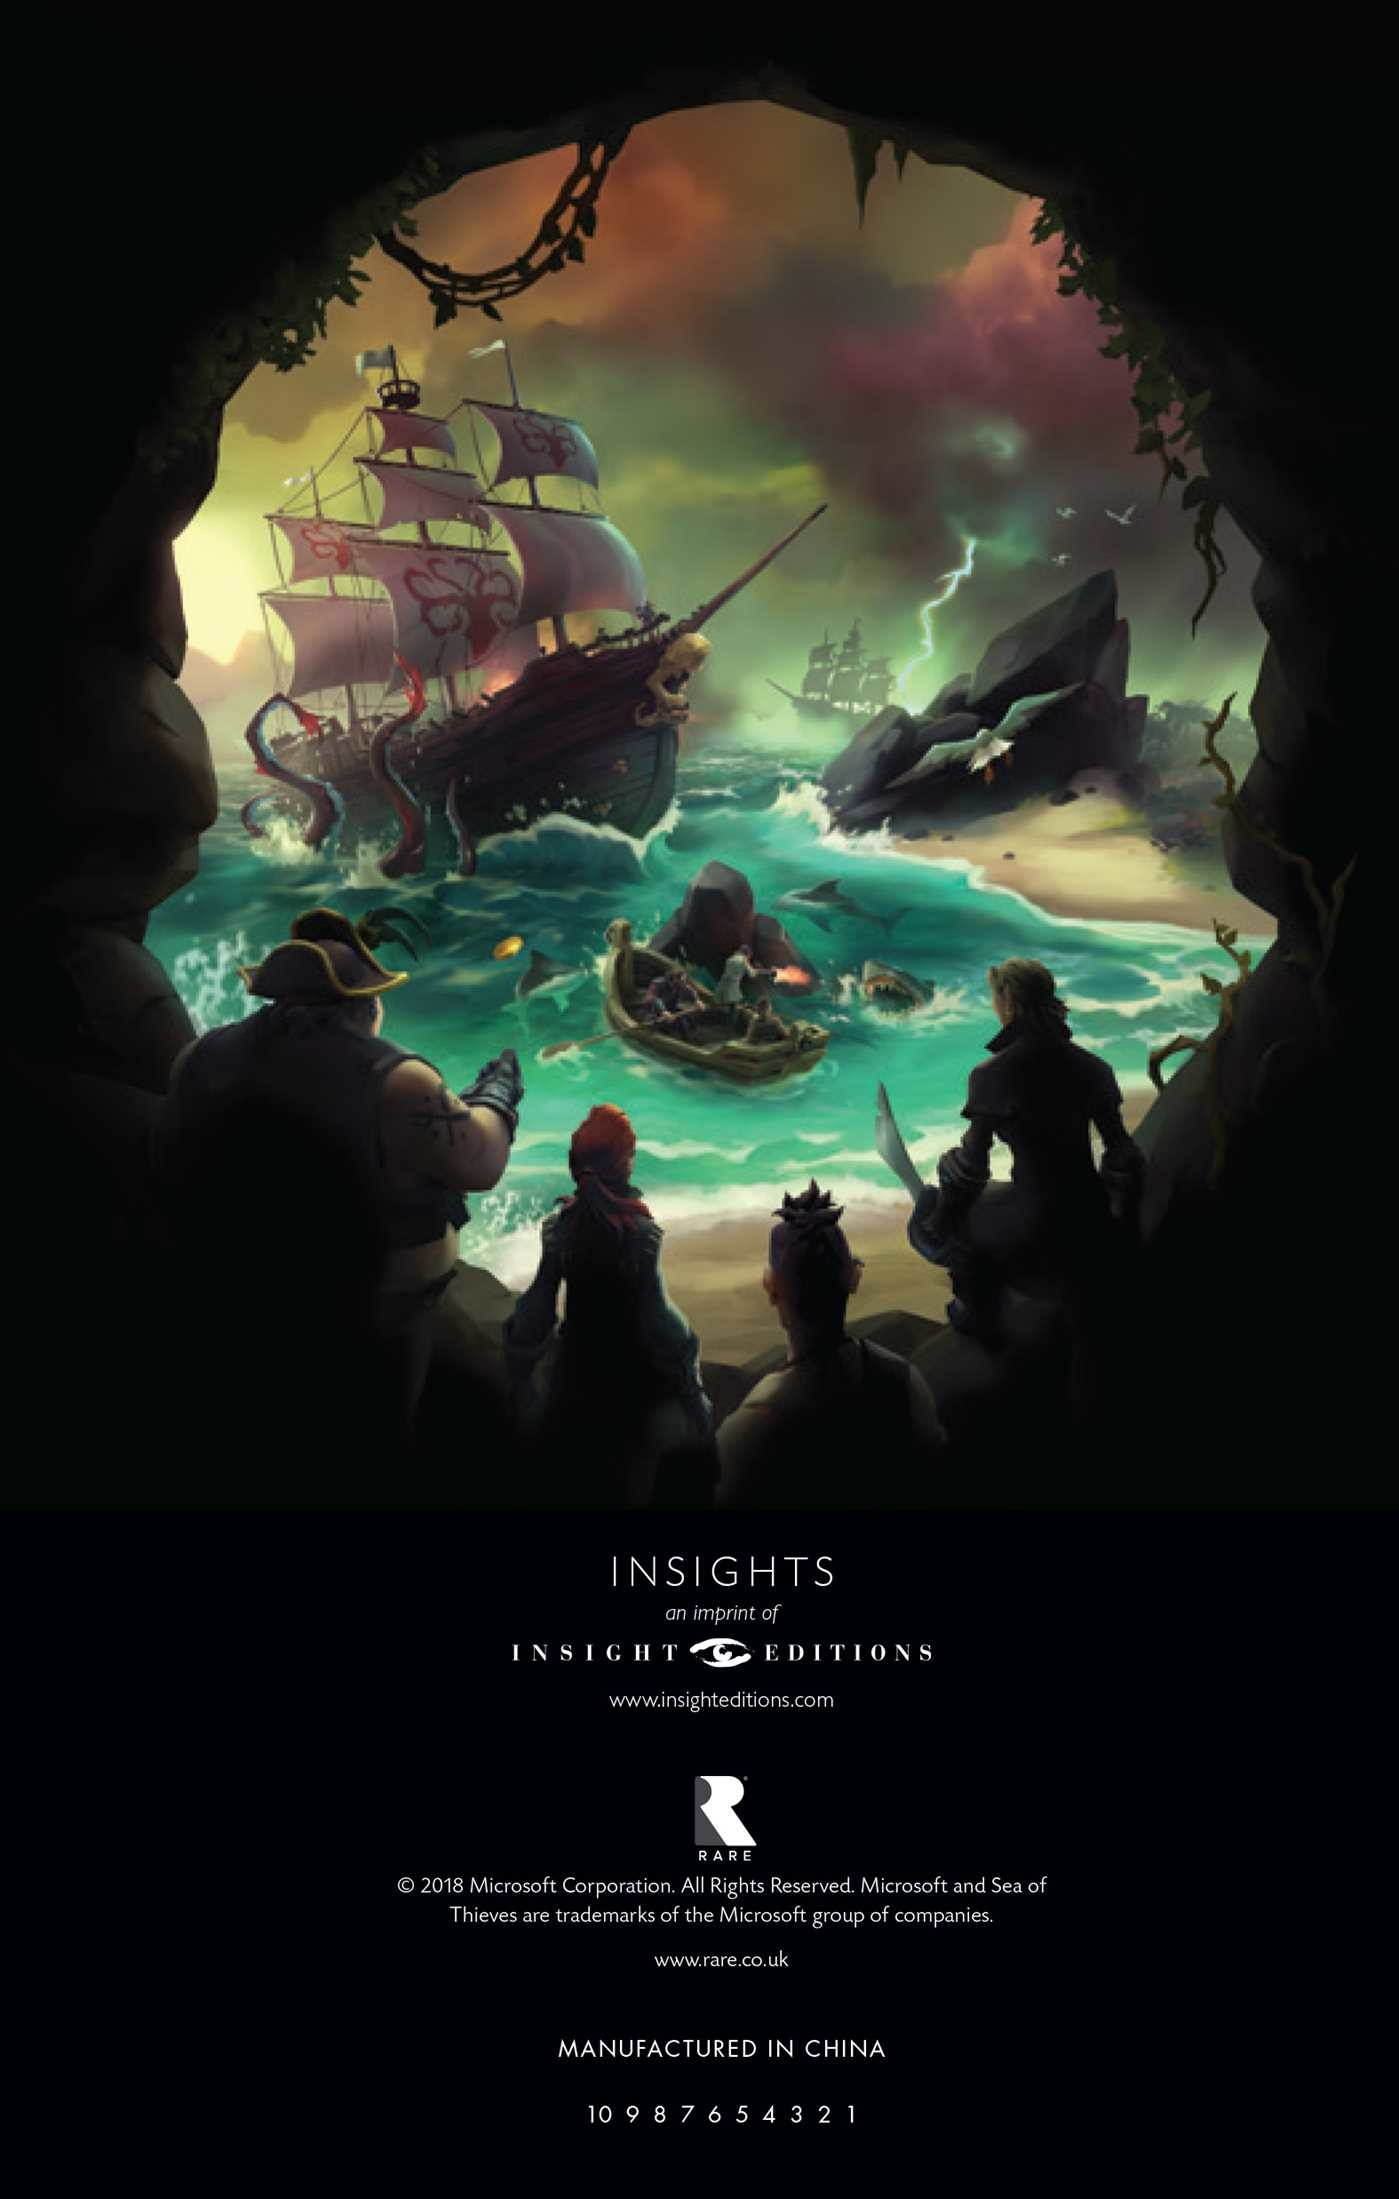 Sea of thieves hardcover ruled journal 9781683834885.in03